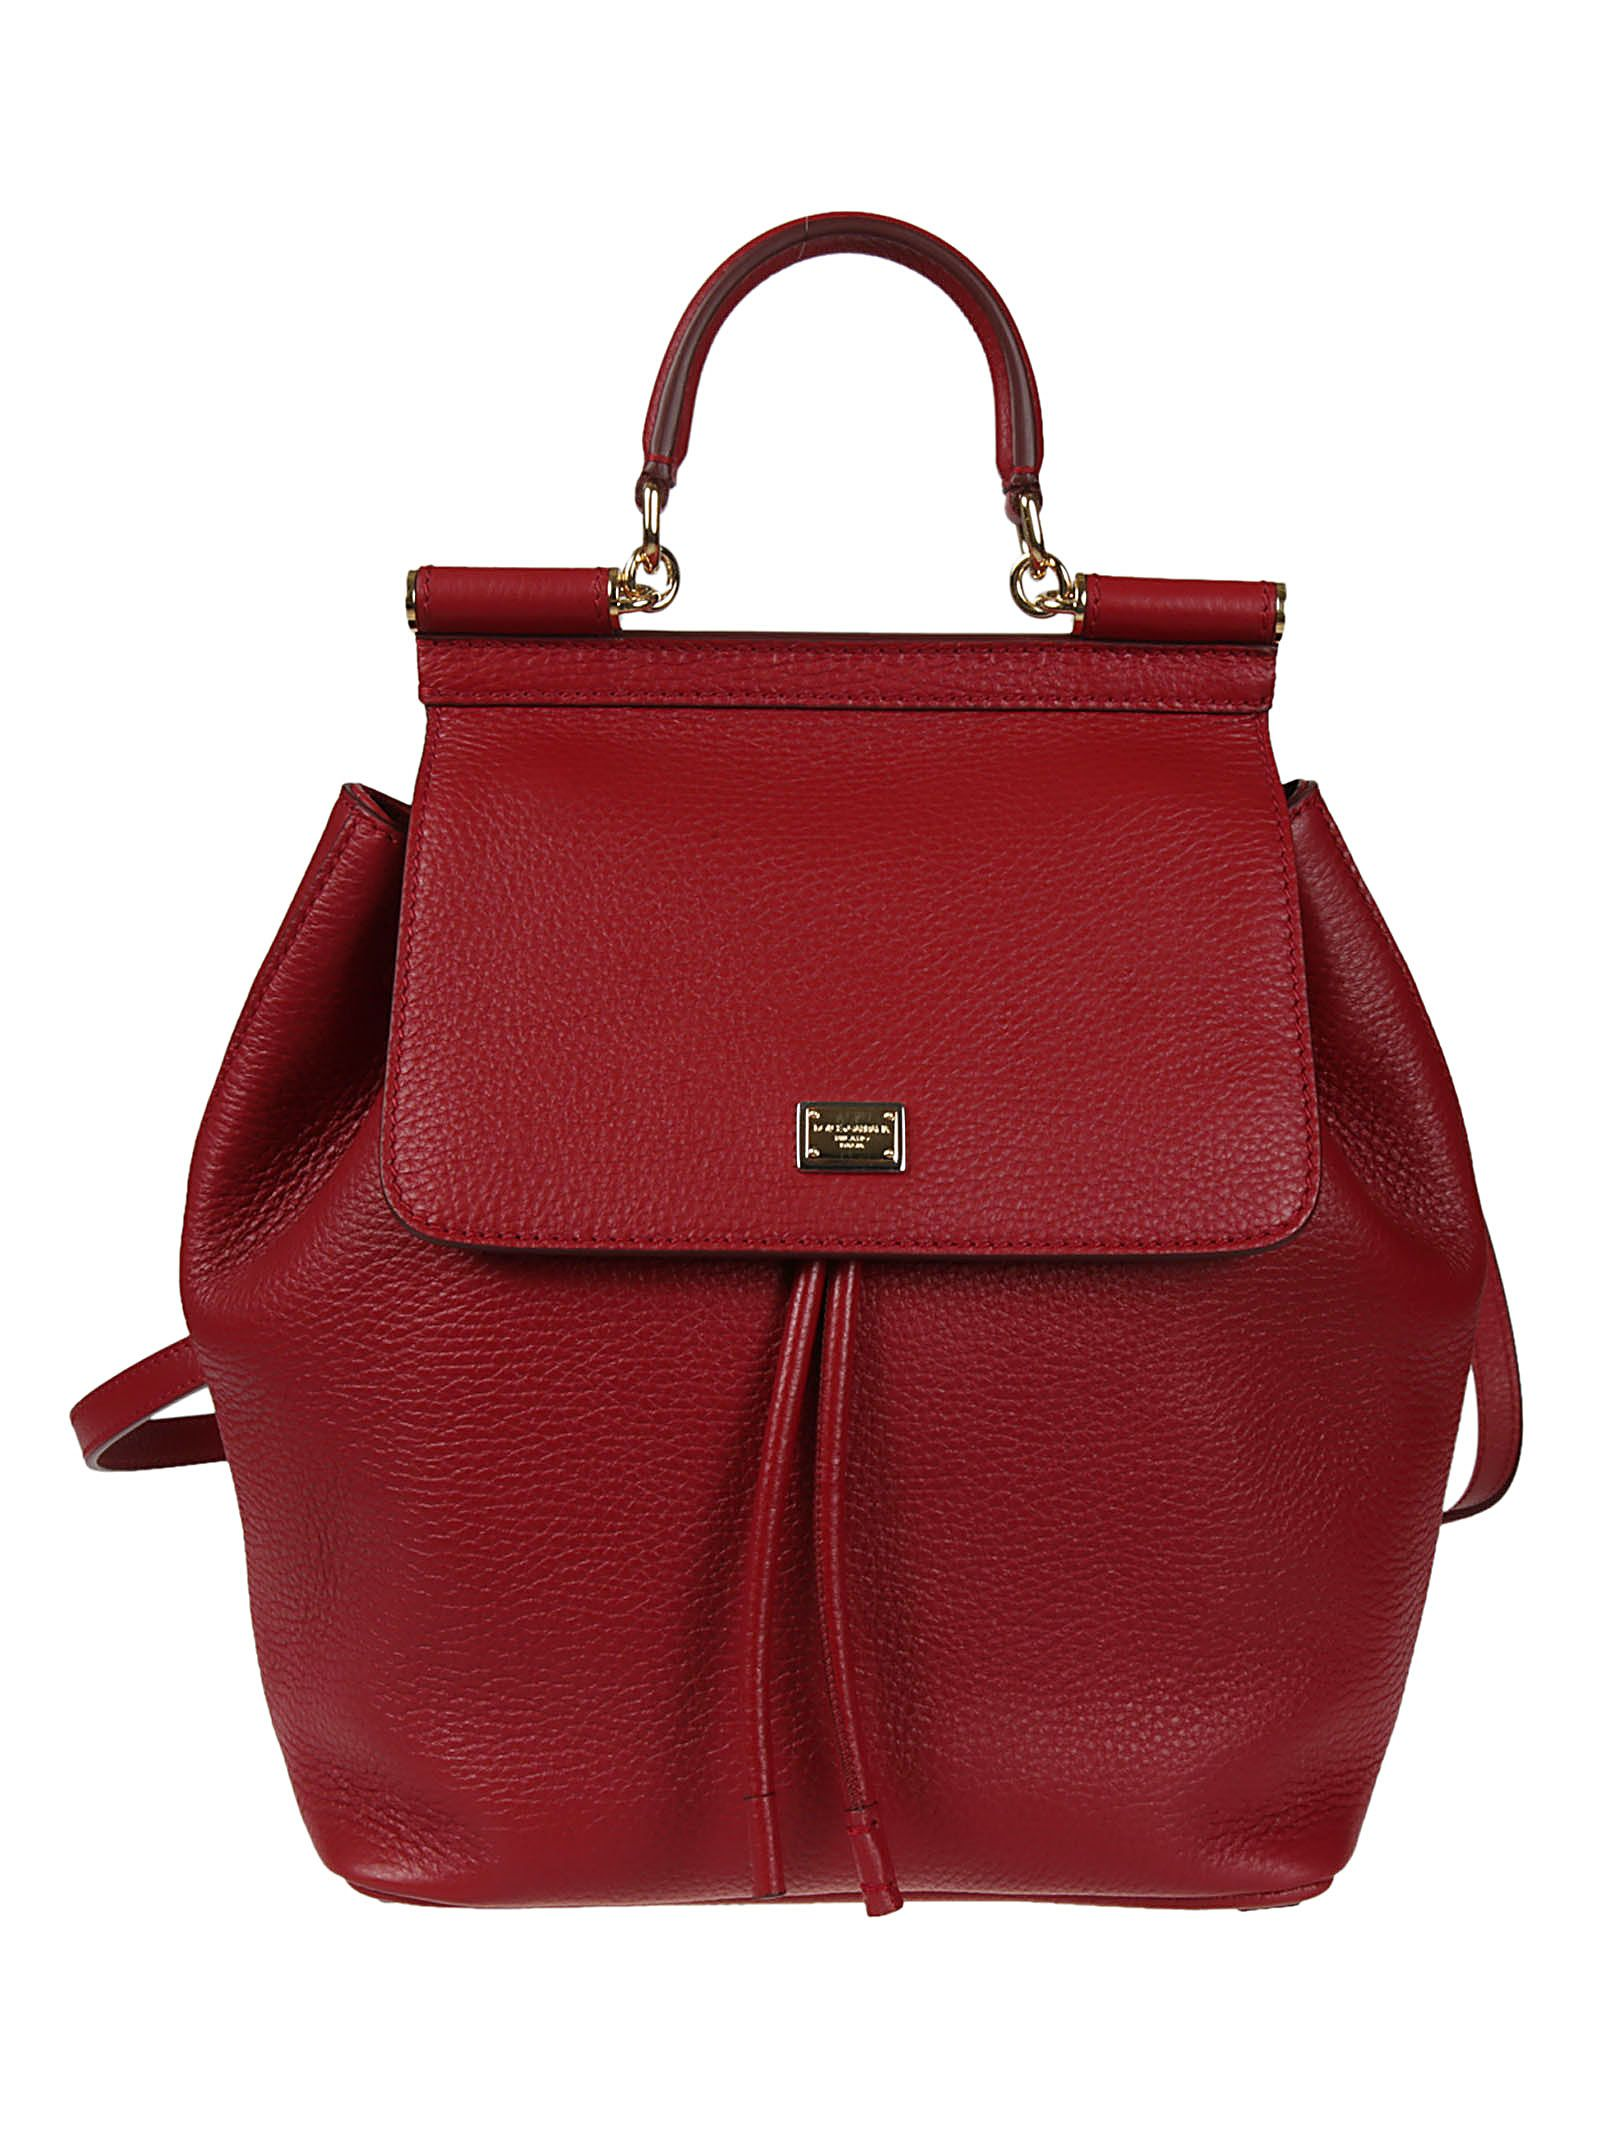 Dolce & Gabbana Pebbled Sicily Backpack in Red